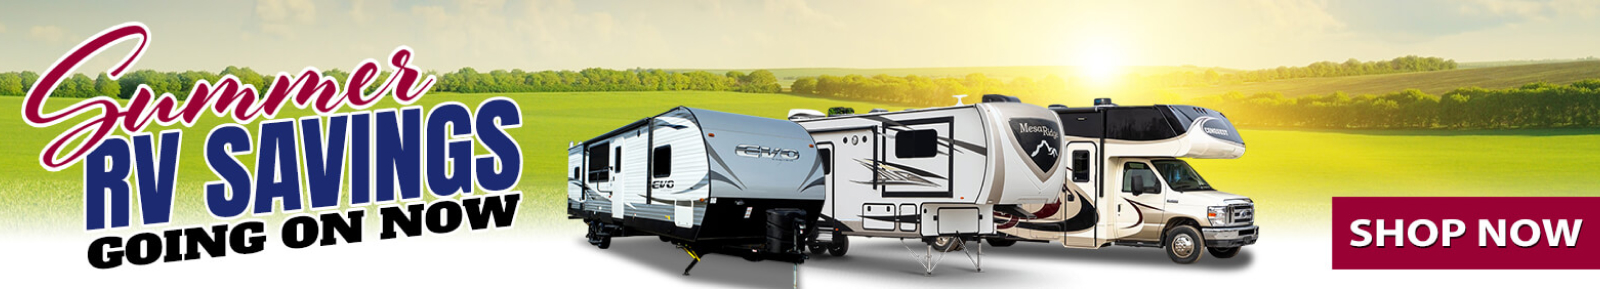 Summer RV Savings Going on Now! Shop Now!